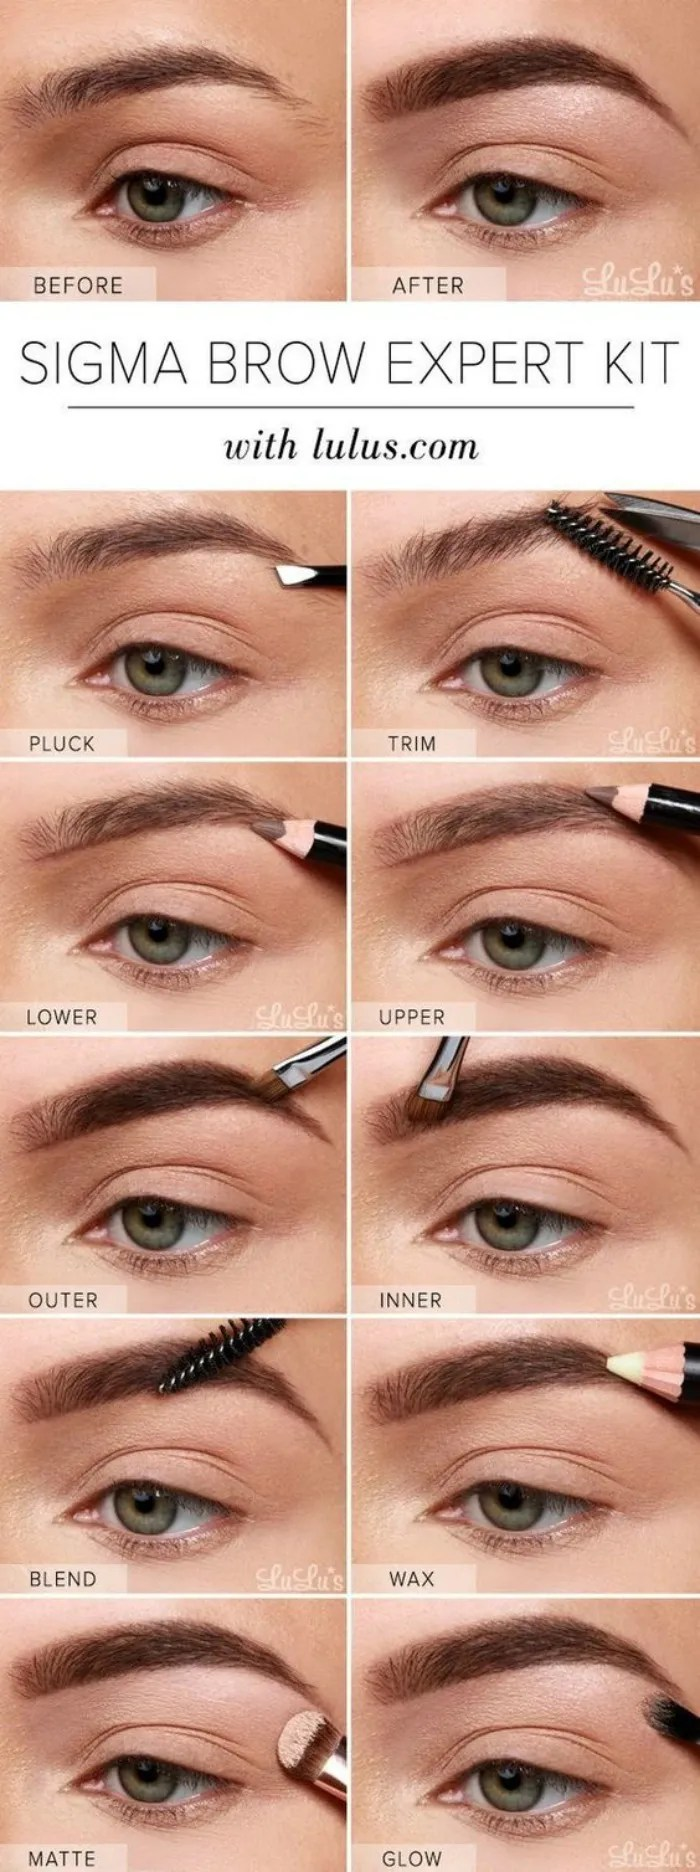 How to get the perfect eyebrow - Connecticut in Style